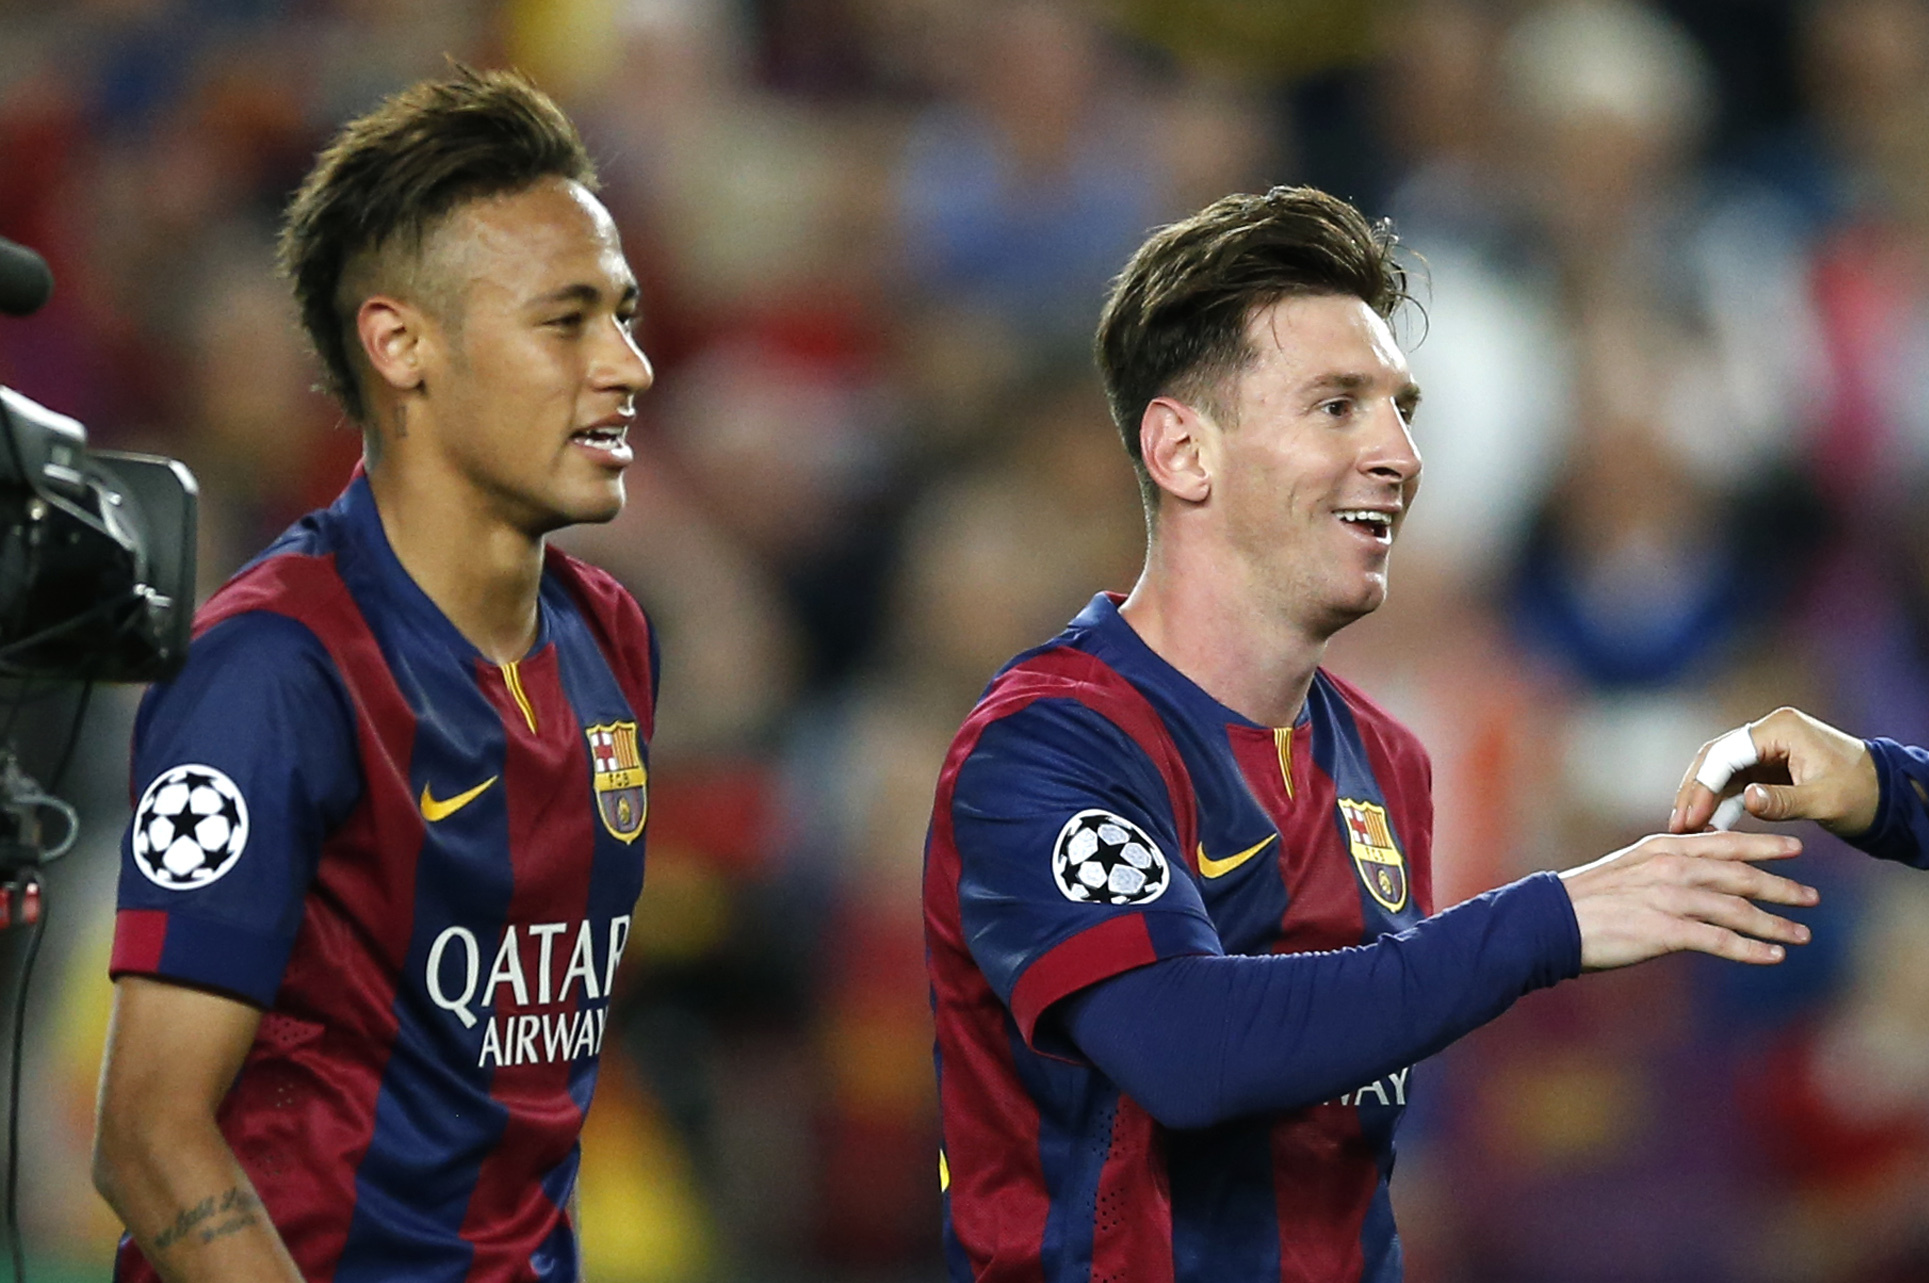 Lionel Messi Neymar Left Off Of 2015 Barcelona Us Tour Roster Bleacher Report Latest News Videos And Highlights